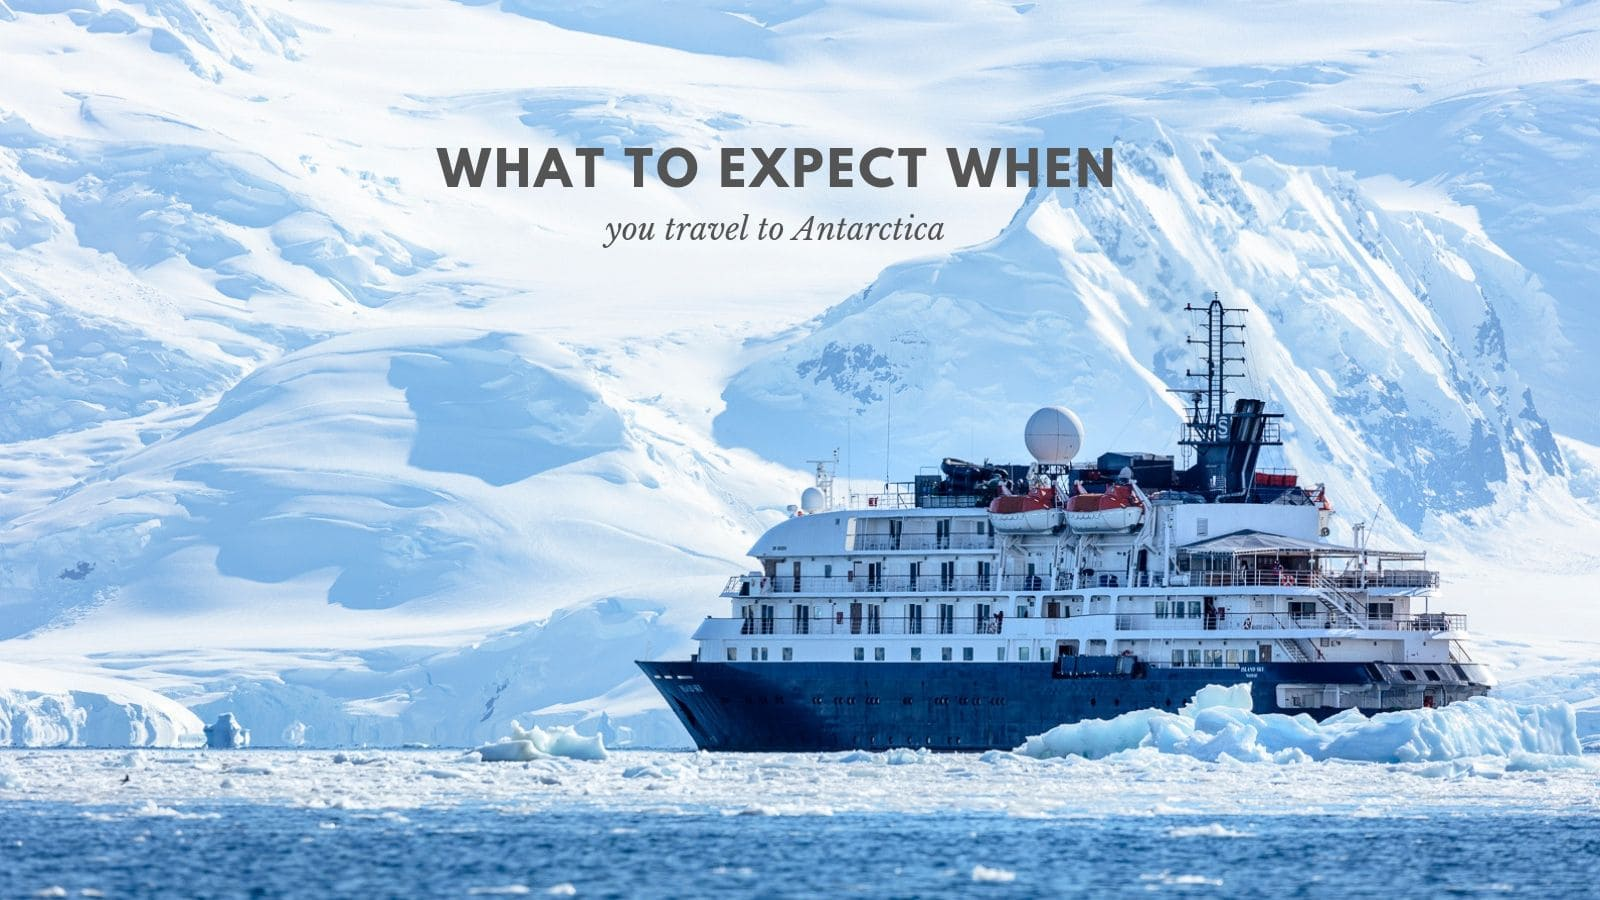 What to expect when you travel to Antarctica